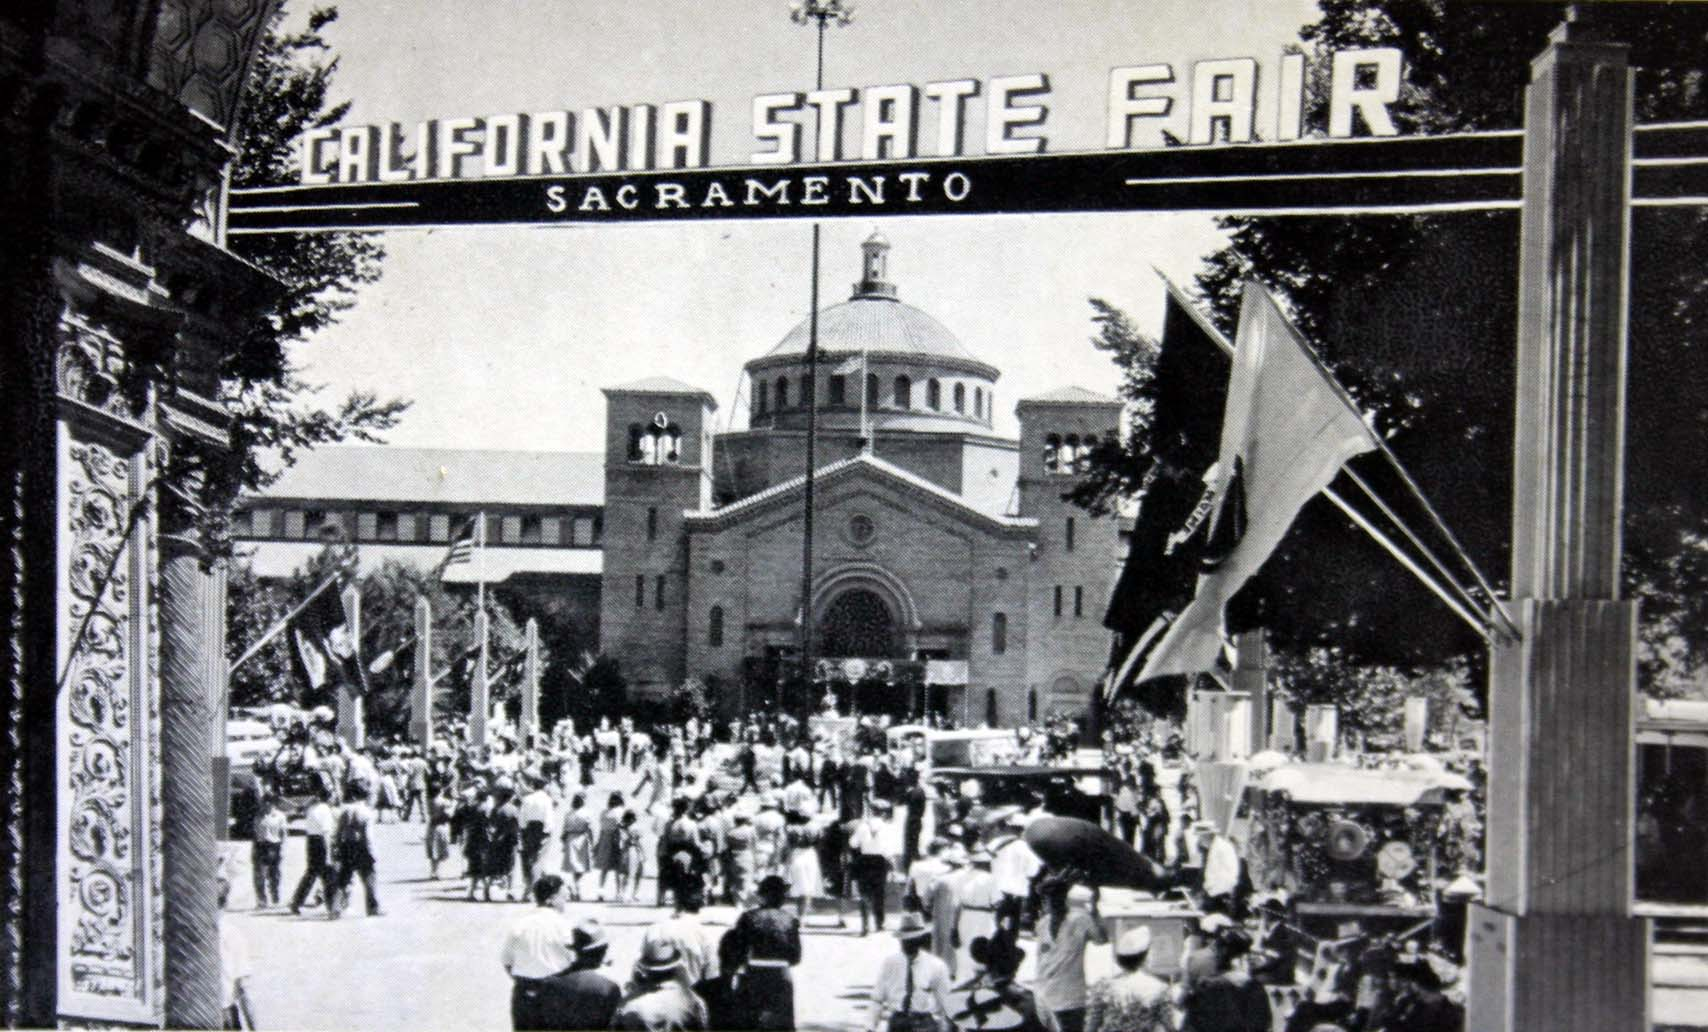 Walking to the old California State Fair | Valley Community